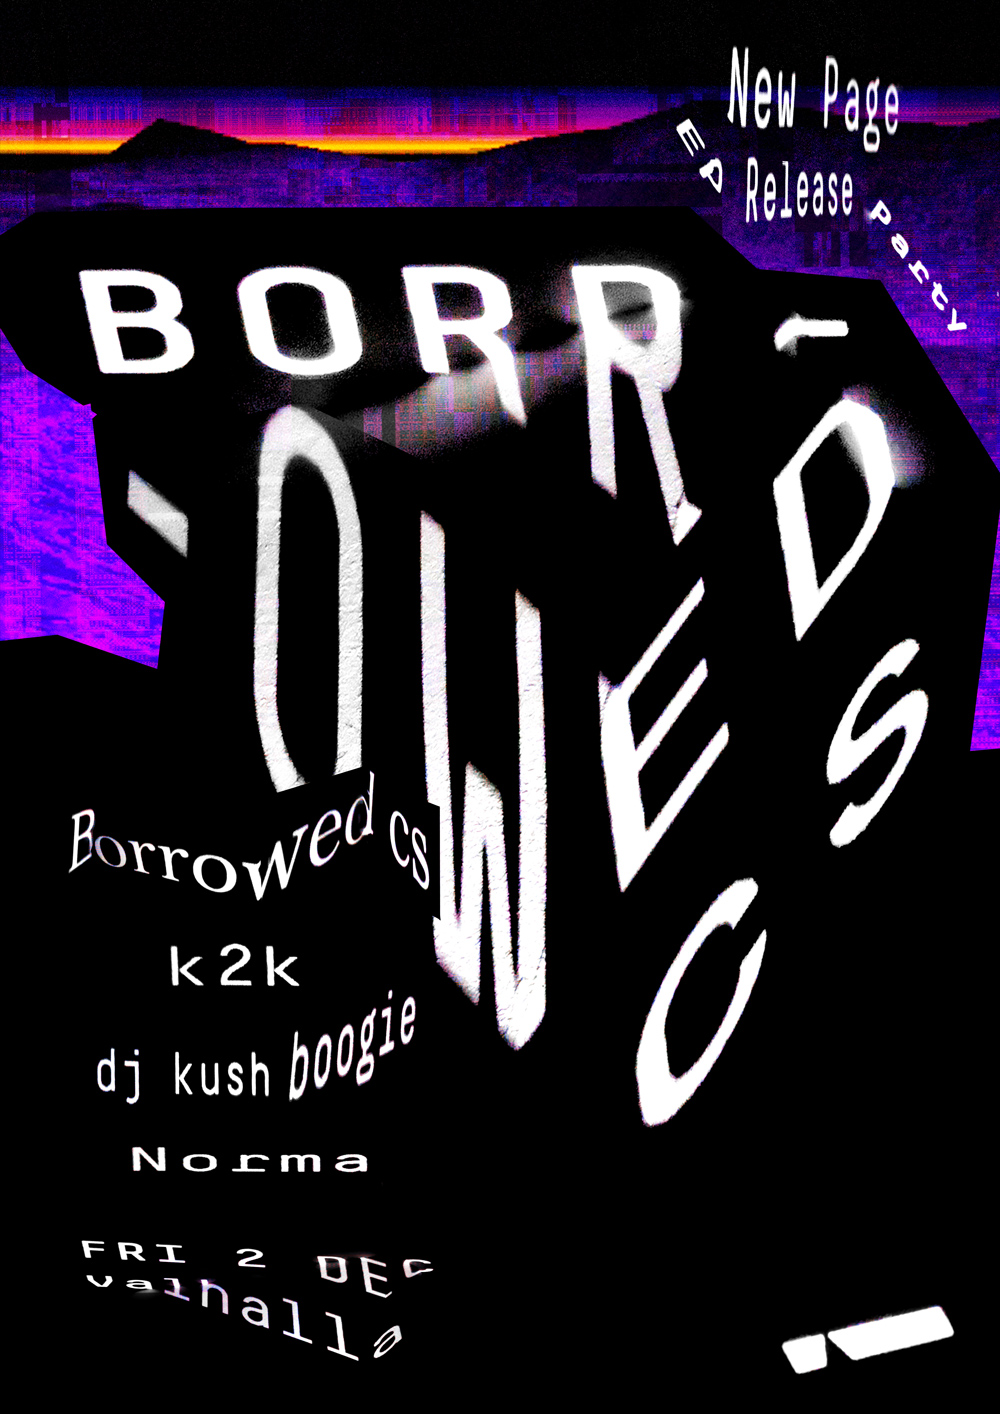 Borrowed Cs 'New Page' Ep Release Party